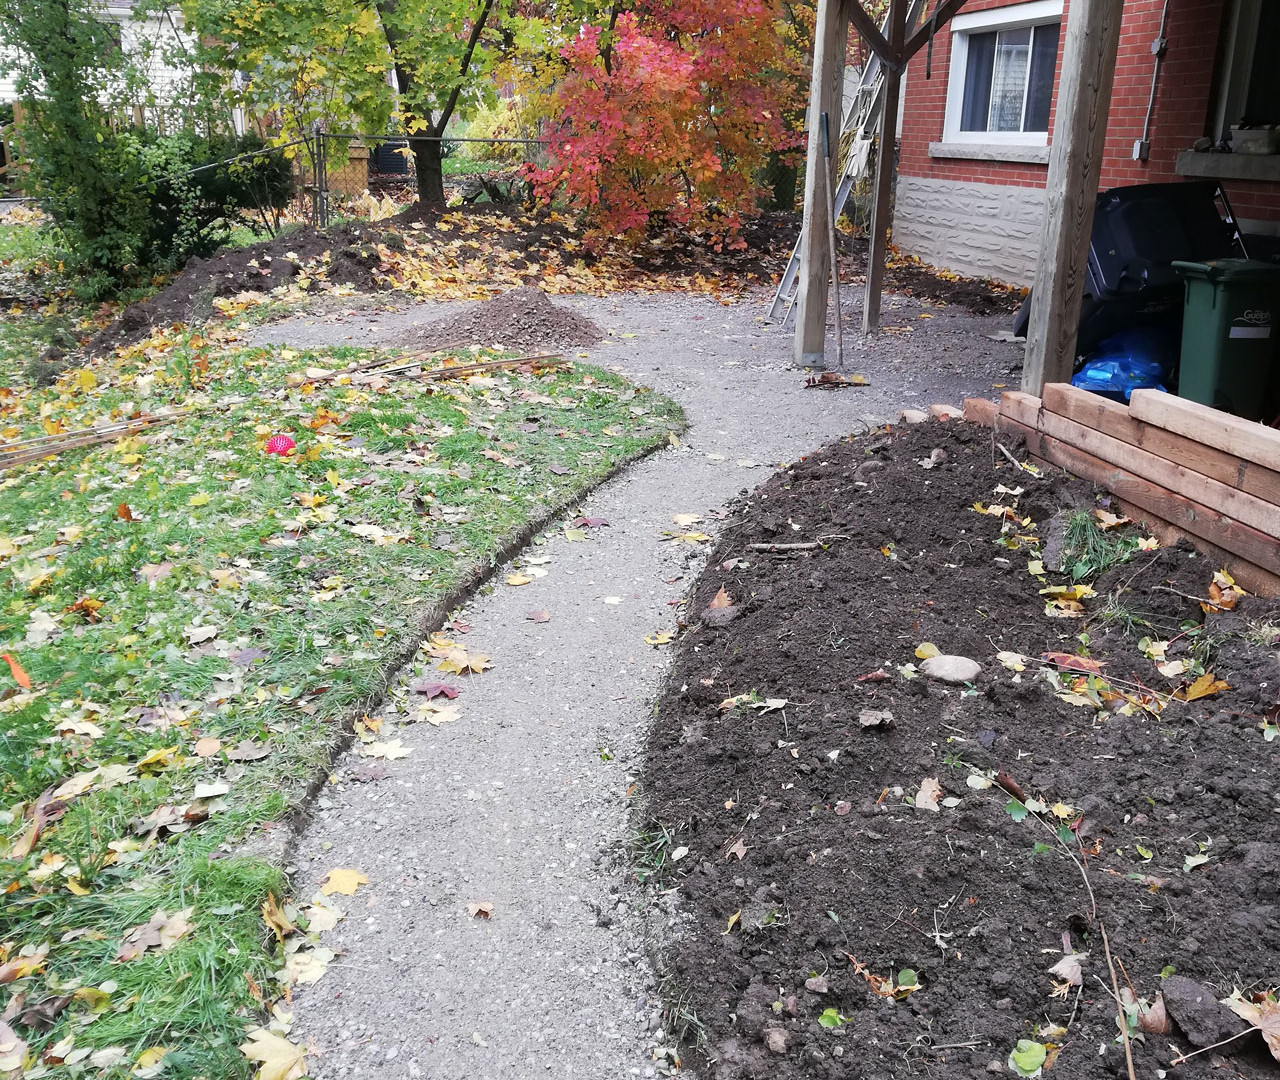 Concrete poured in dug-out back path